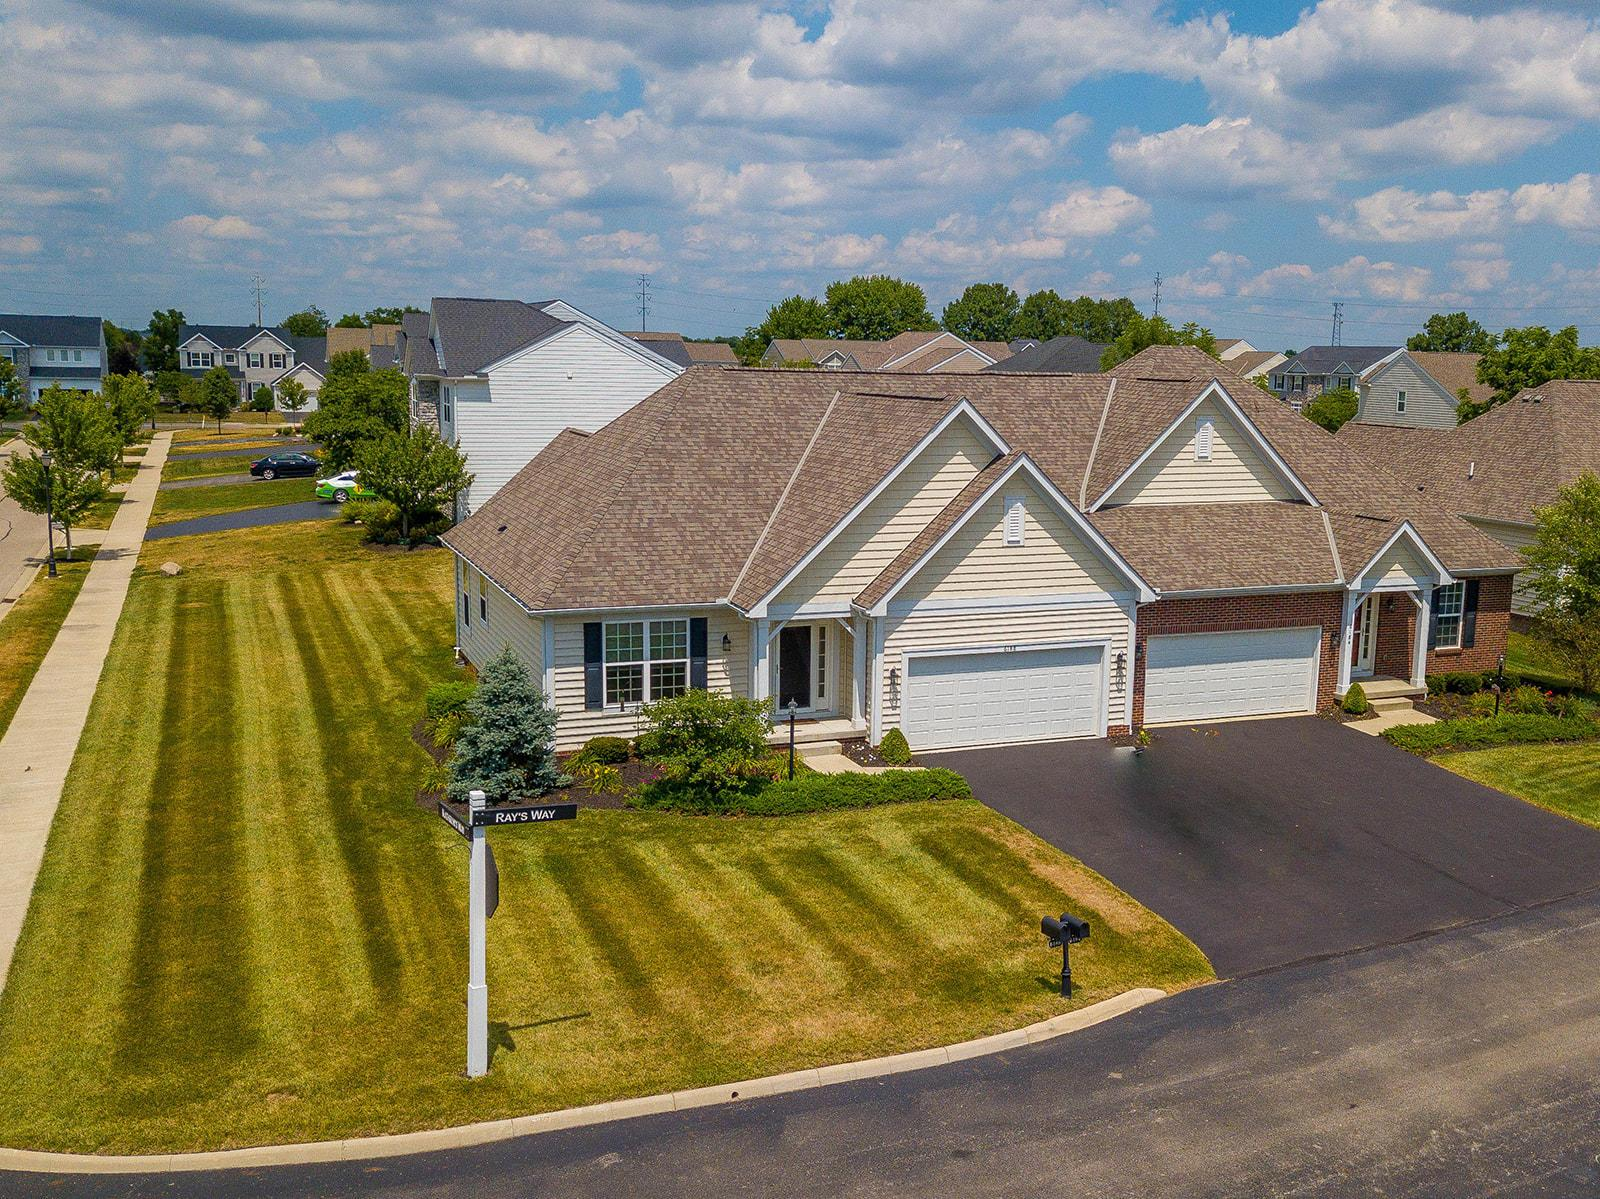 6188 Rays Way, Hilliard, Ohio 43026, 2 Bedrooms Bedrooms, ,3 BathroomsBathrooms,Residential,For Sale,Rays,220024843